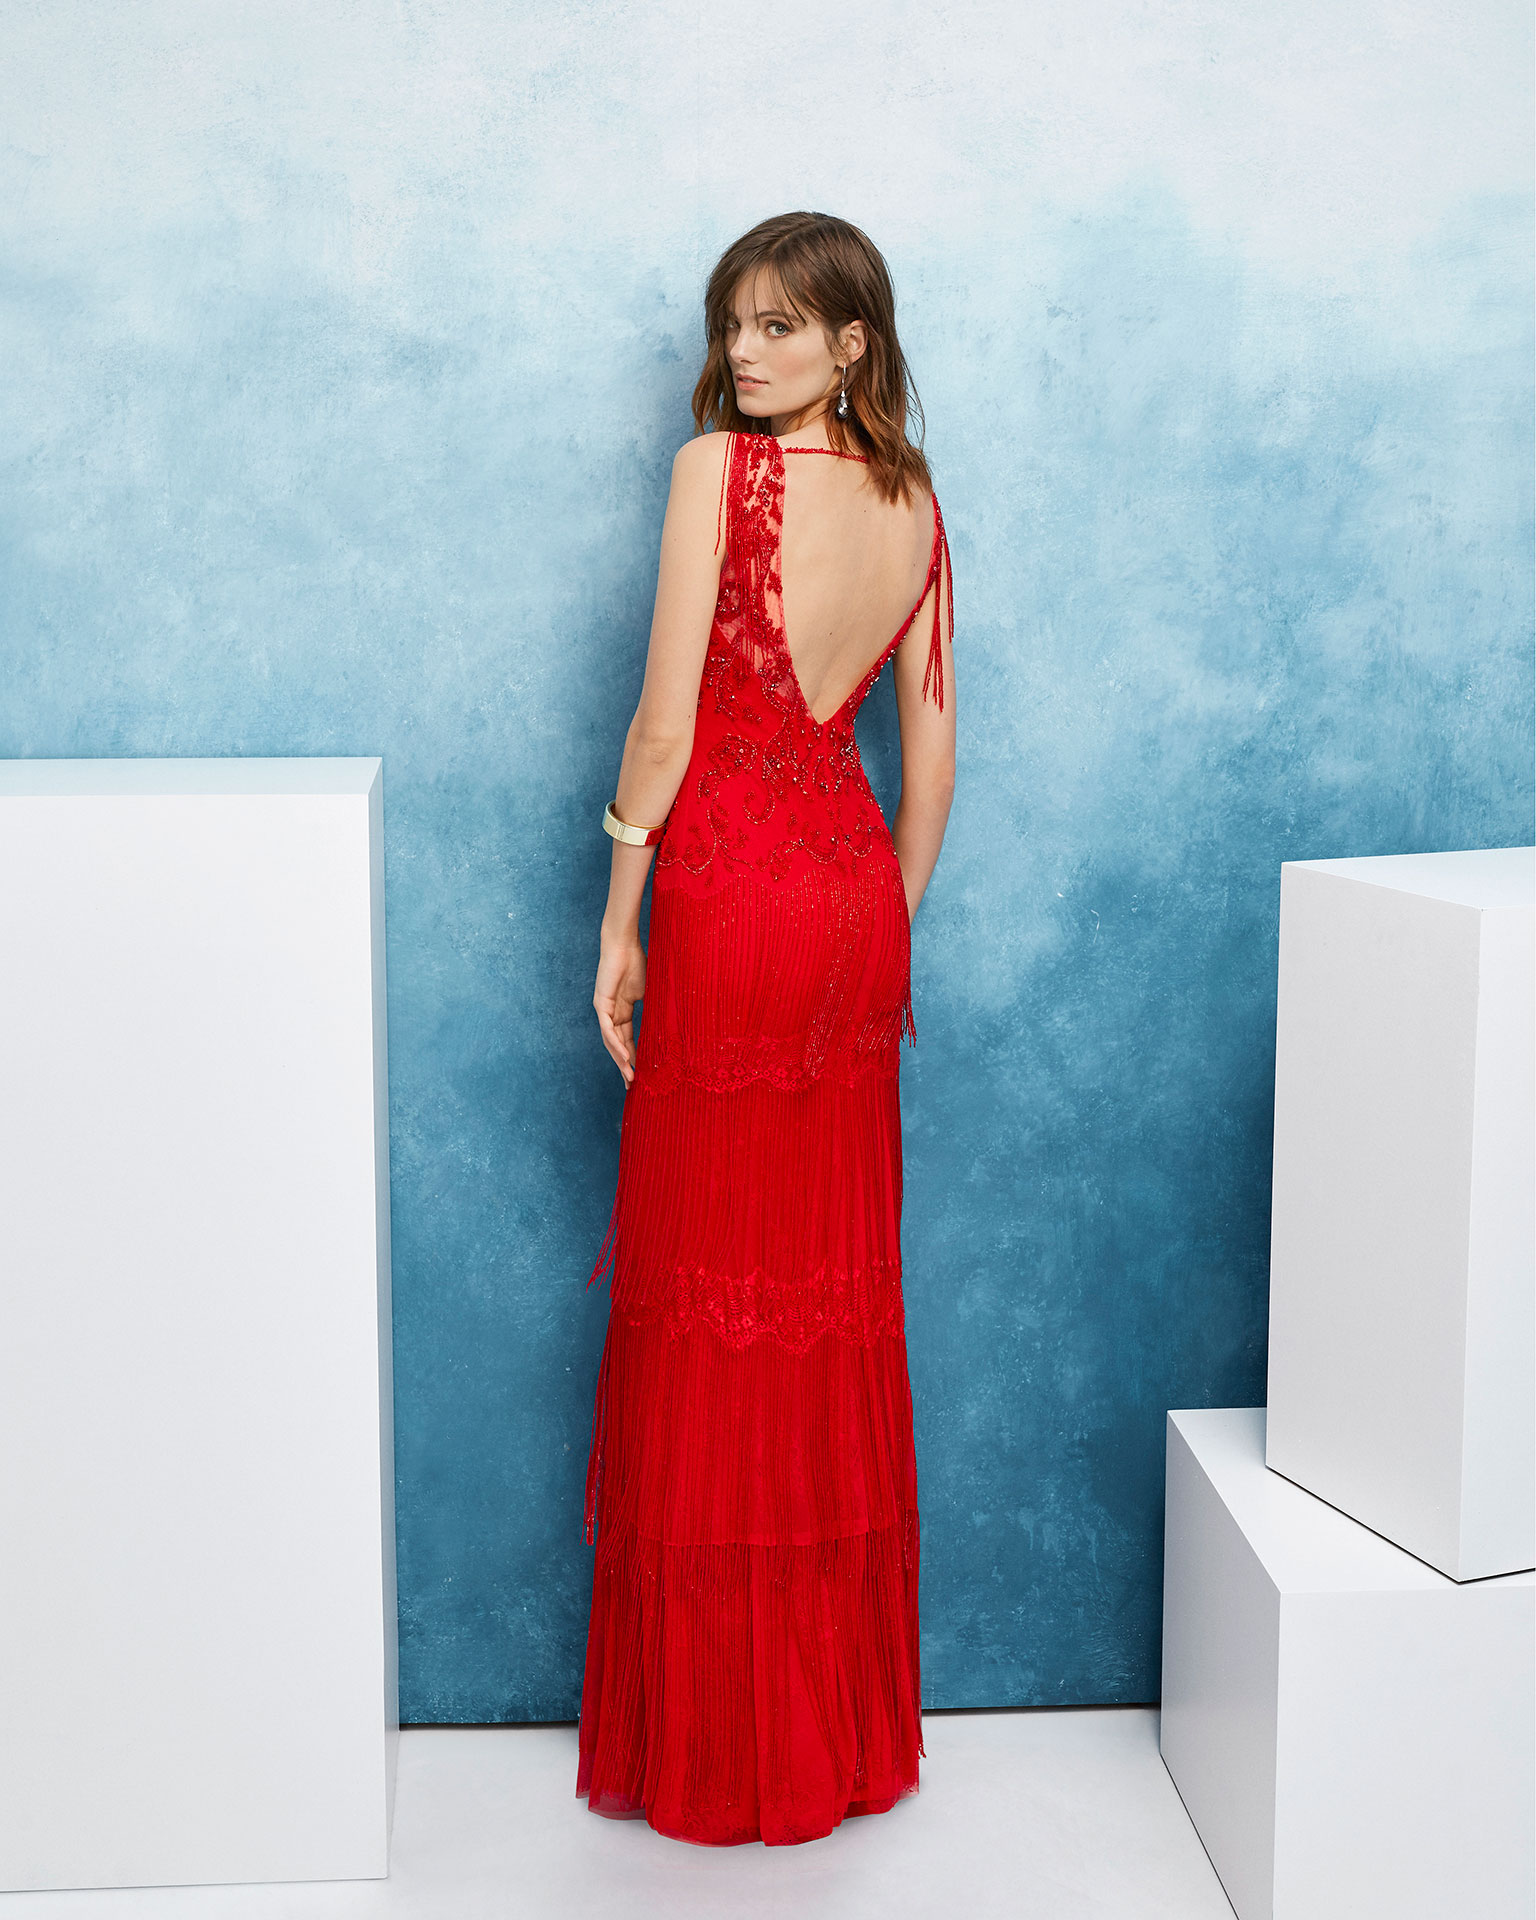 Beaded cocktail dress. With deep-plunge neckline and fringed skirt and sleeves. 2019 FIESTA AIRE BARCELONA Collection.